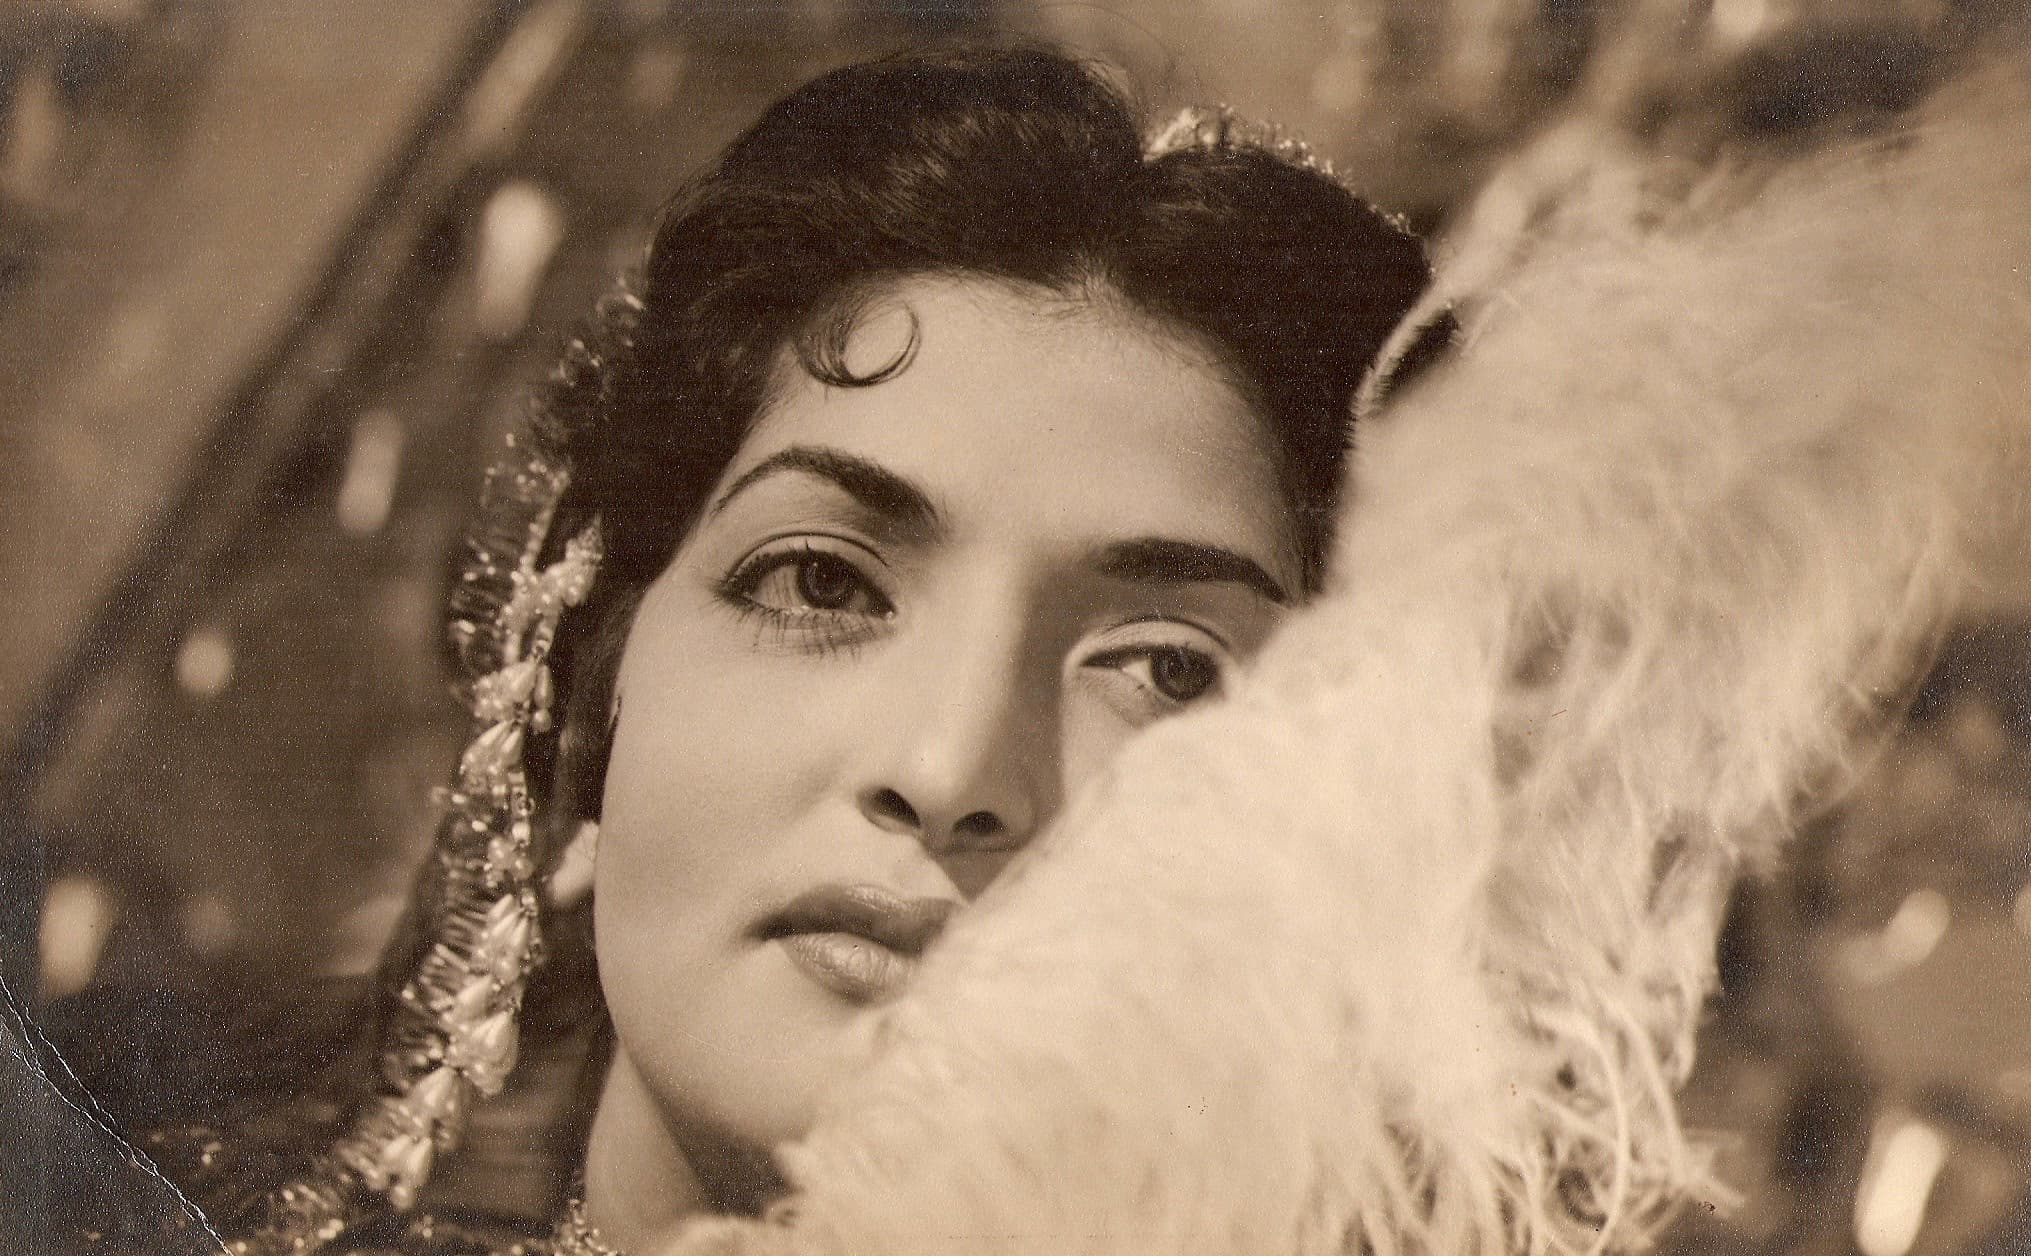 On the set of Mughal-e-Azam. —All photos by the author